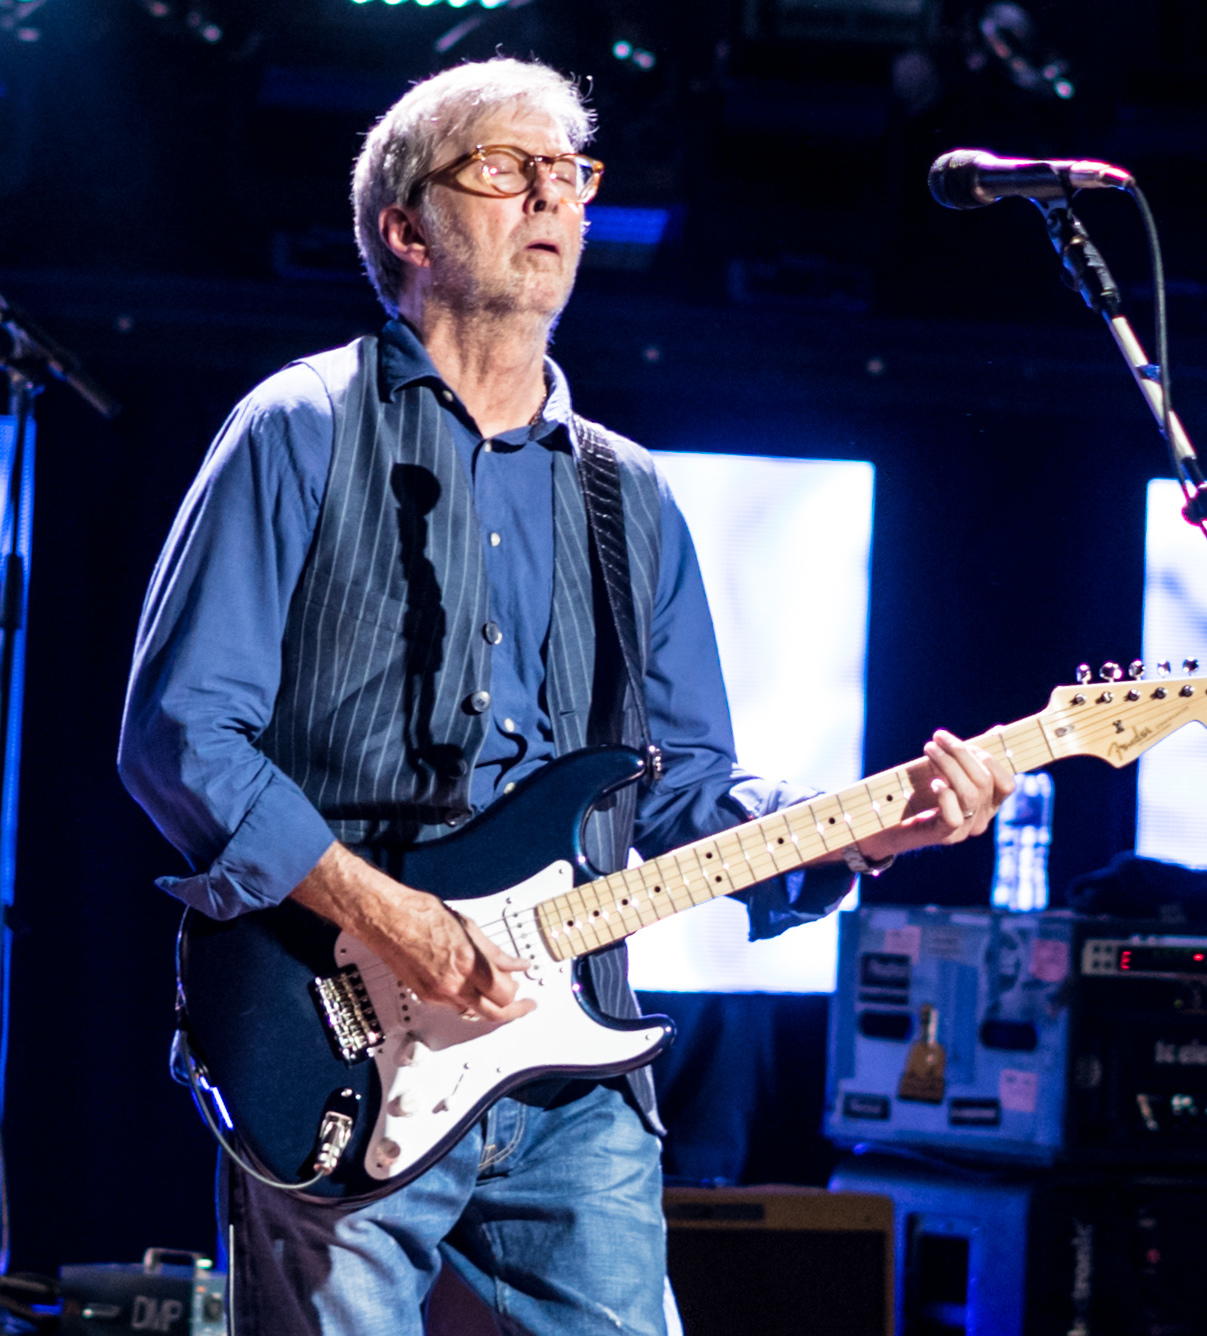 Clapton performing at the [[Royal Albert Hall]] in May 2017